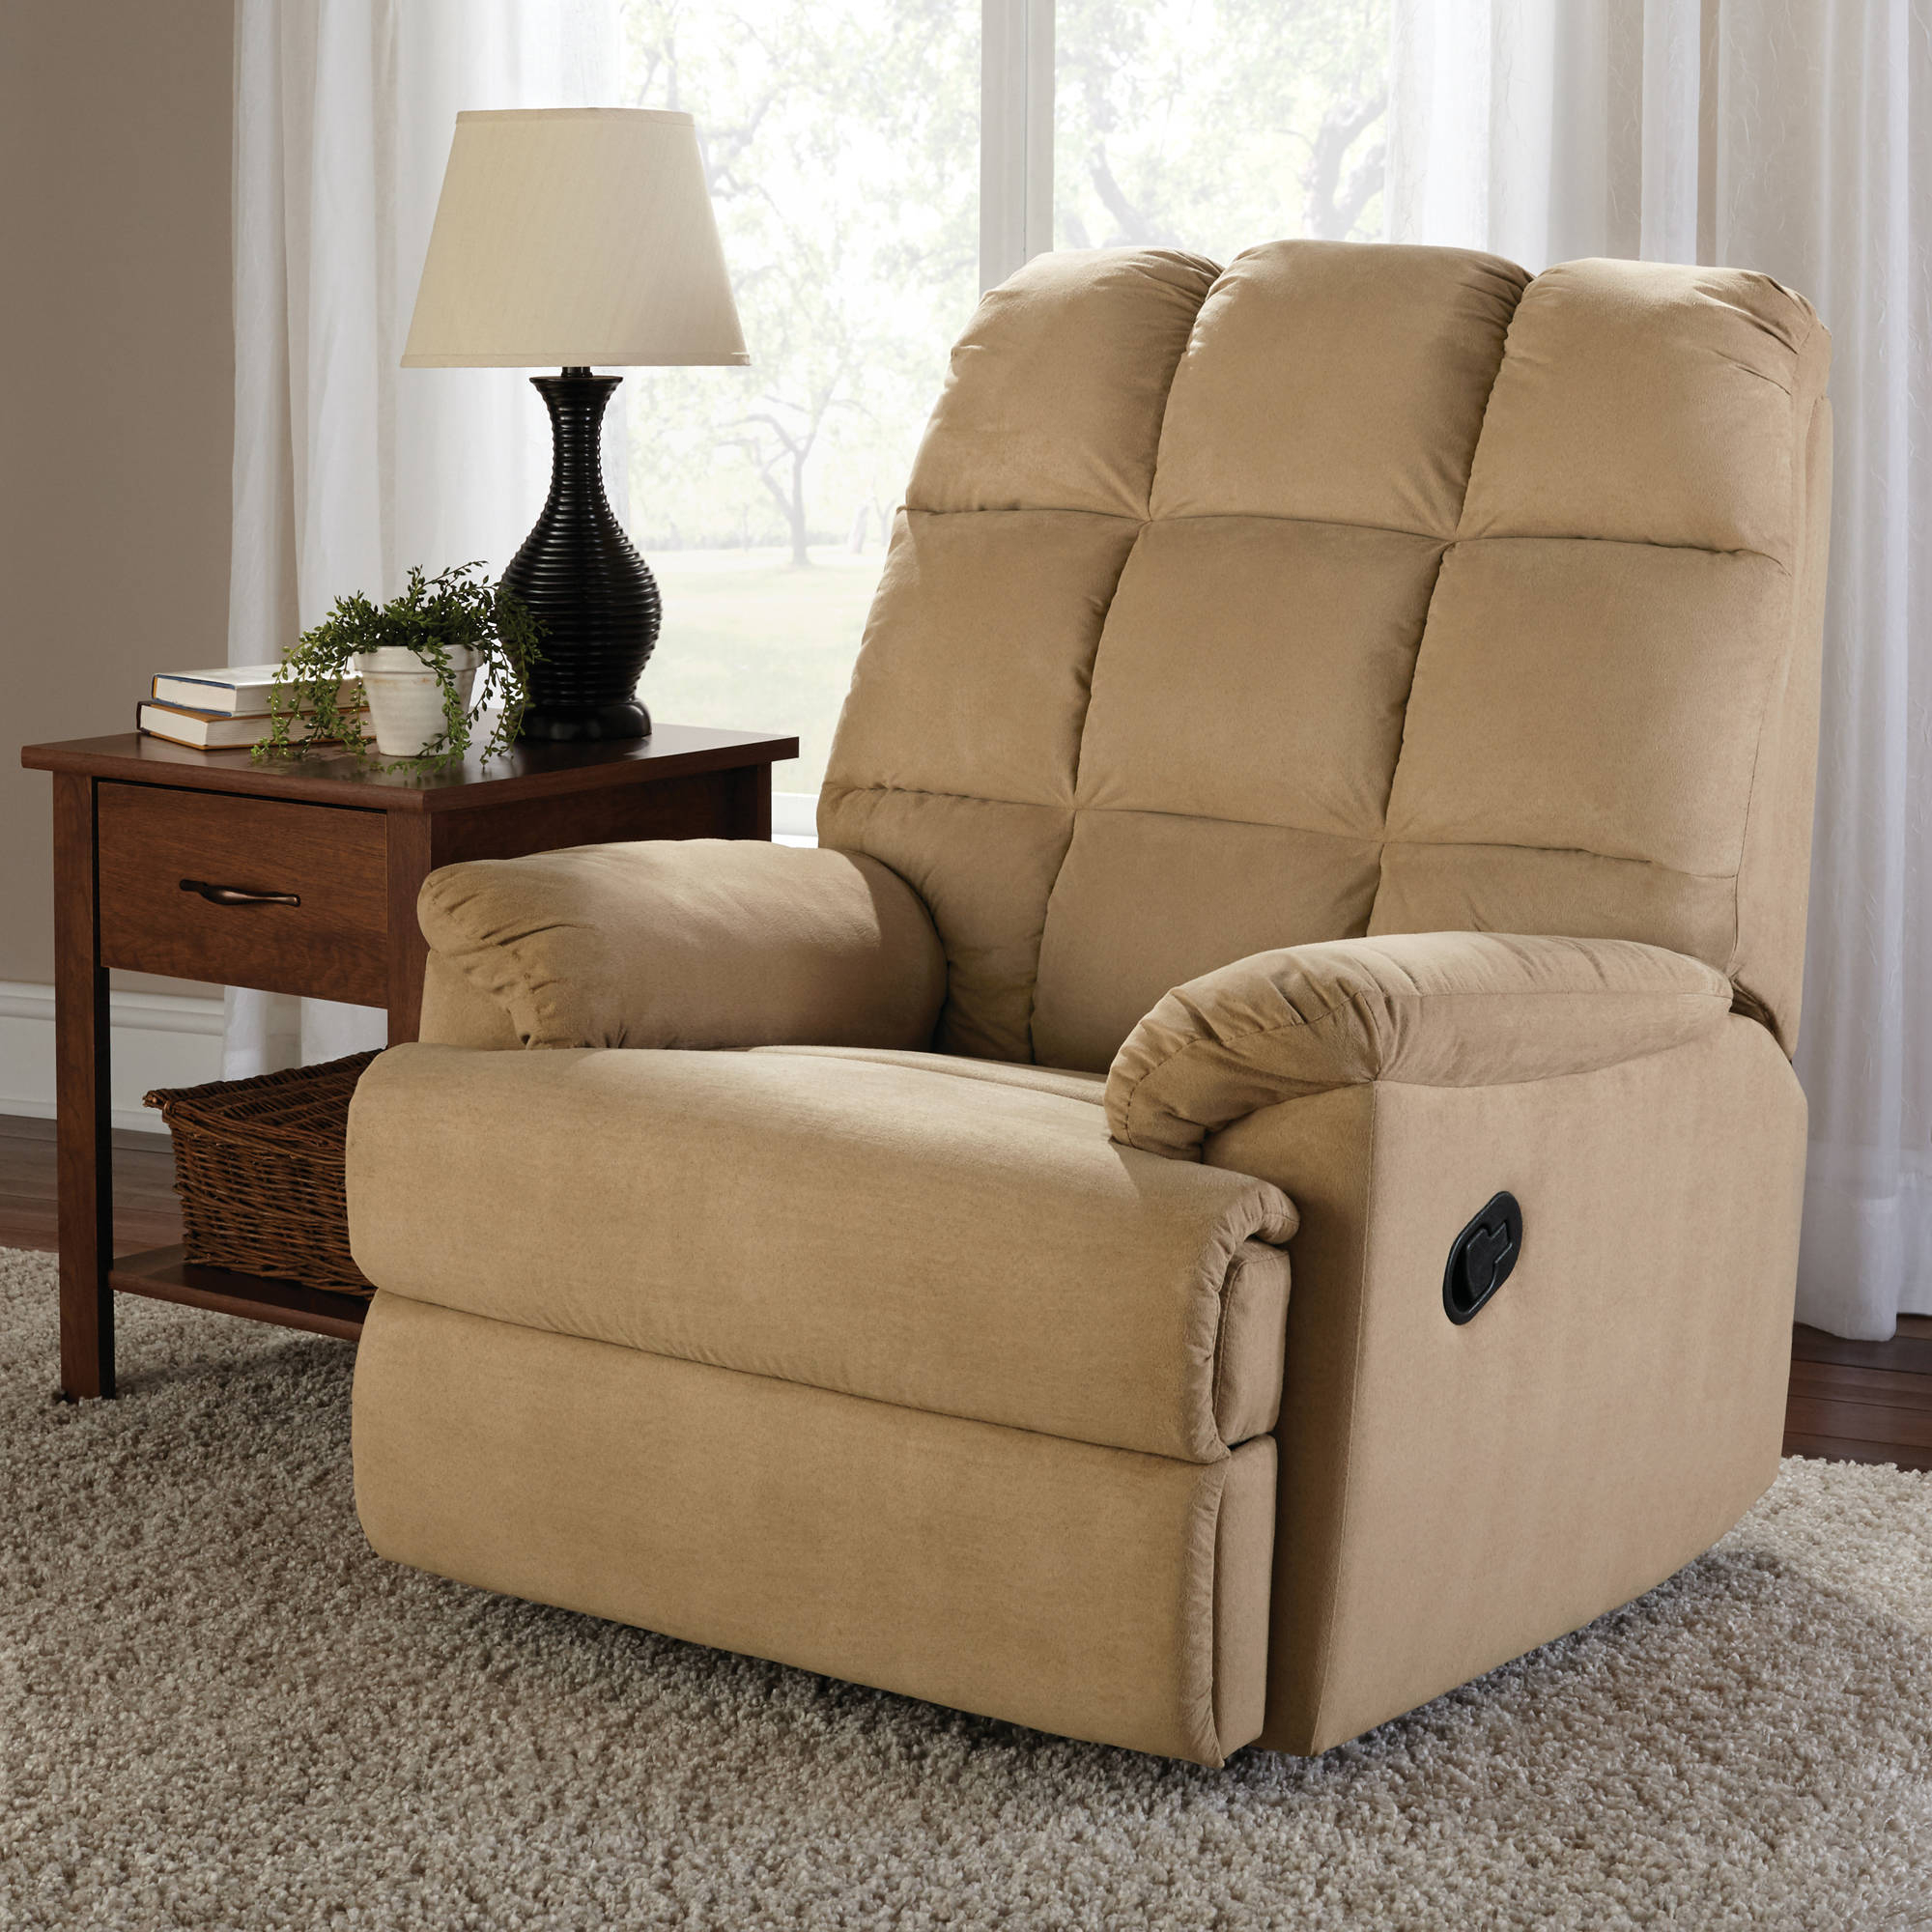 Abbey Swivel Glider Recliners Intended For Famous Furniture: Magnificent Walmart Glider Rocker For Fabulous Home (View 2 of 20)